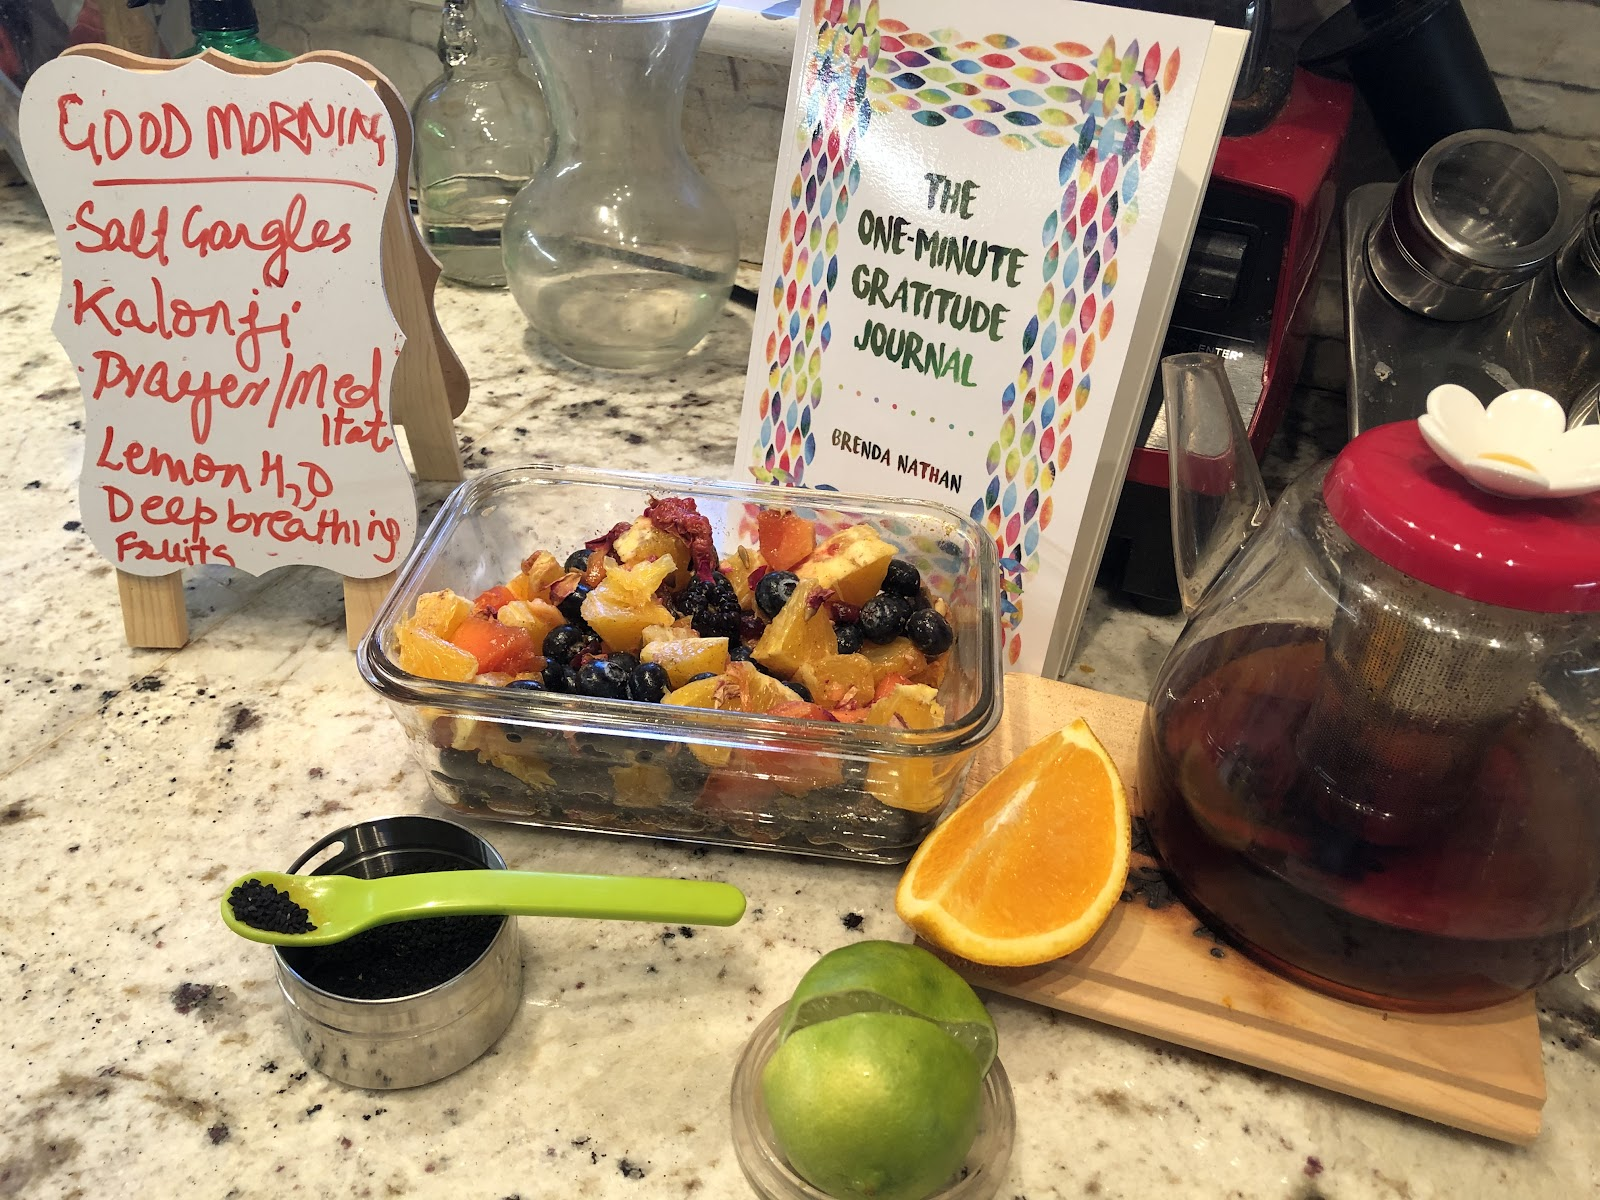 Healthy recipes in display